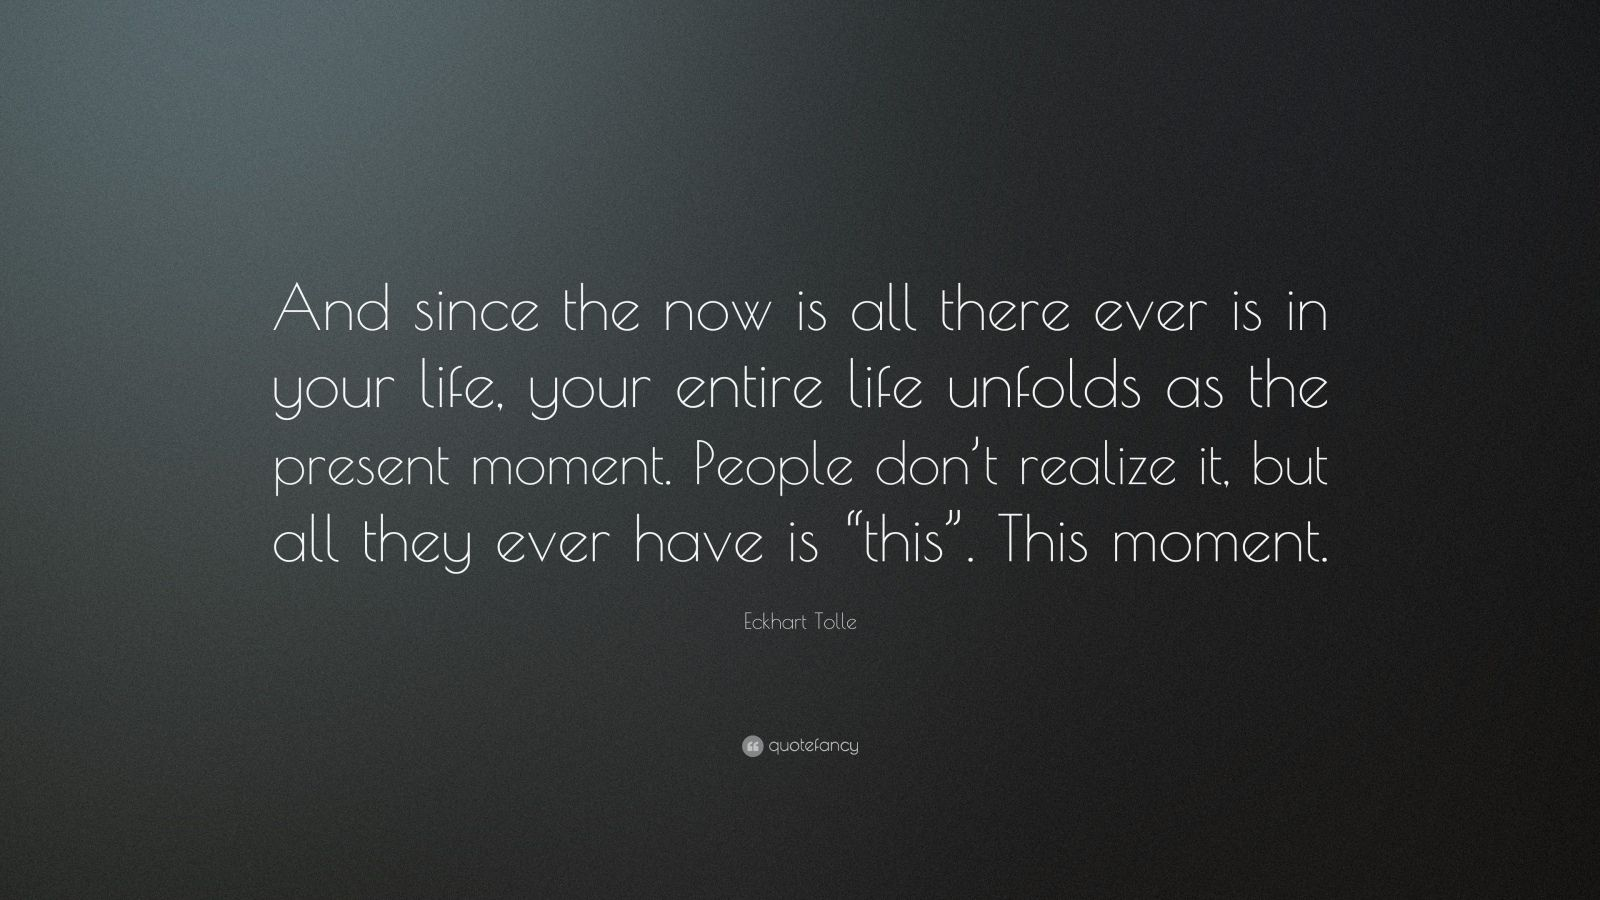 """Eckhart Tolle Quote: """"And since the now is all there ever is in your life, your entire life unfolds as the present moment. People don't realize it, but all they ever have is """"this"""". This moment."""""""